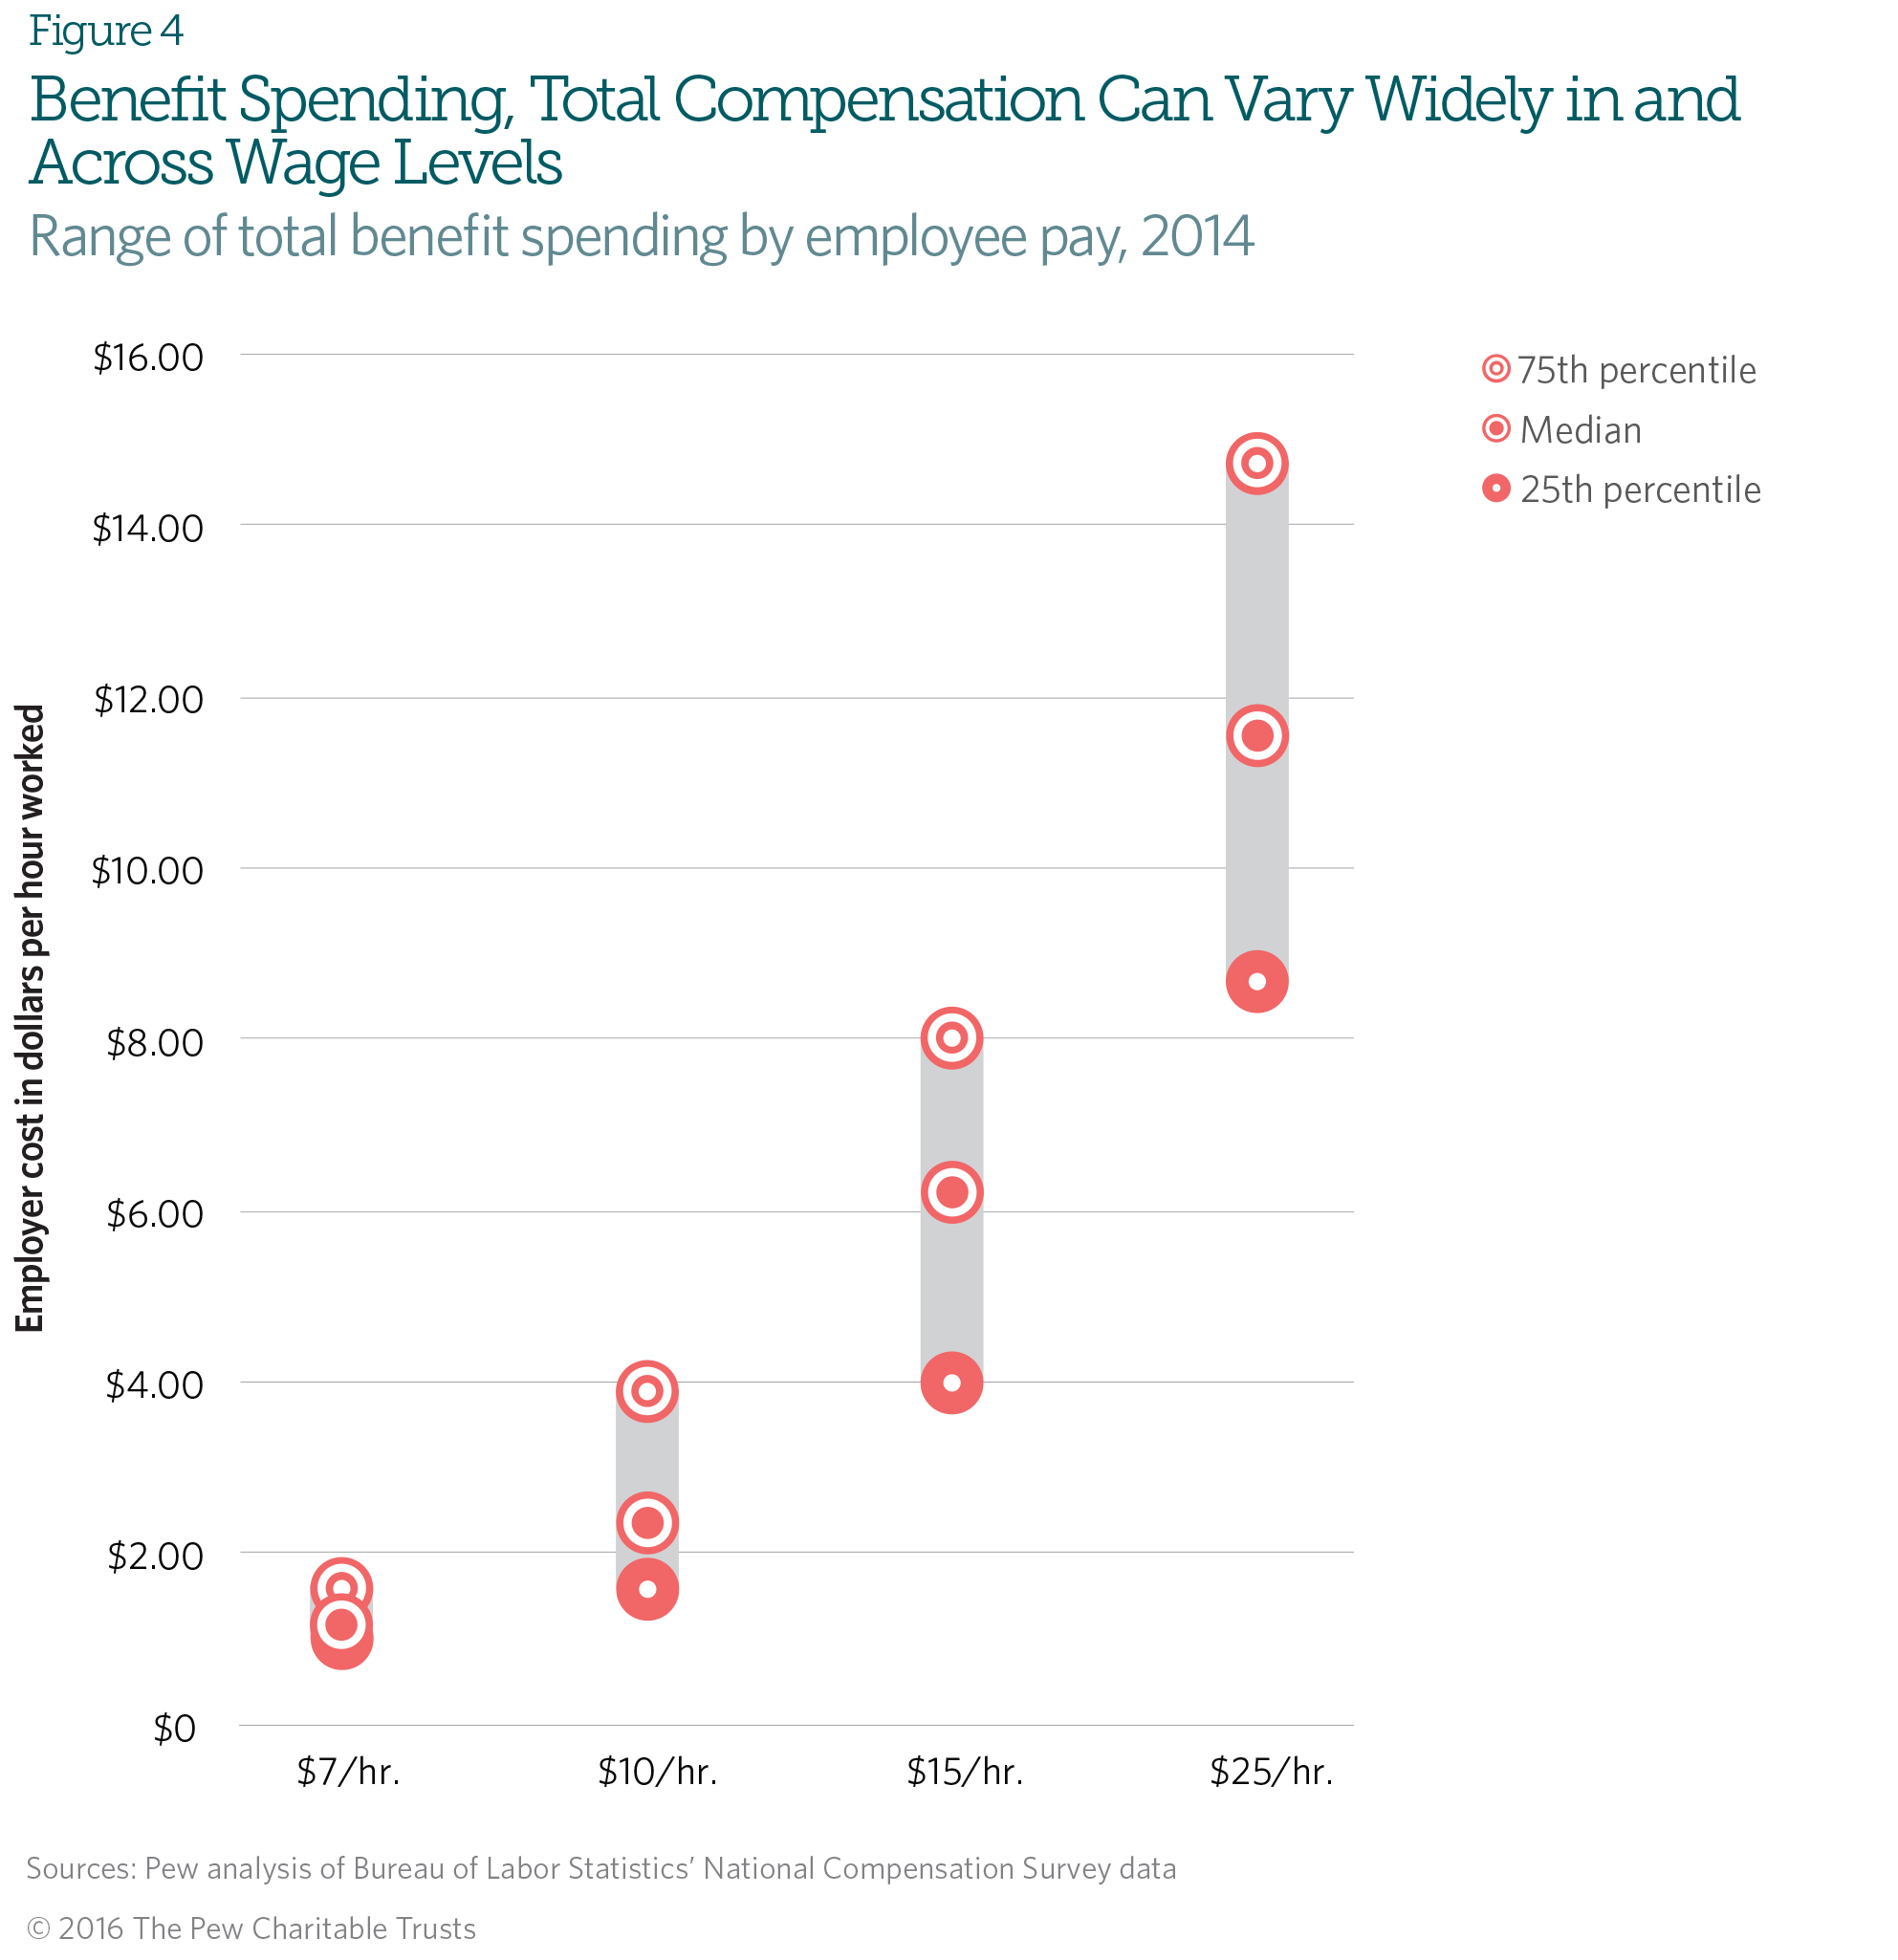 worker benefits and their costs vary widely across u s industries the findings on total compensation provide the clearest picture of how benefits spending can affect workers financial security